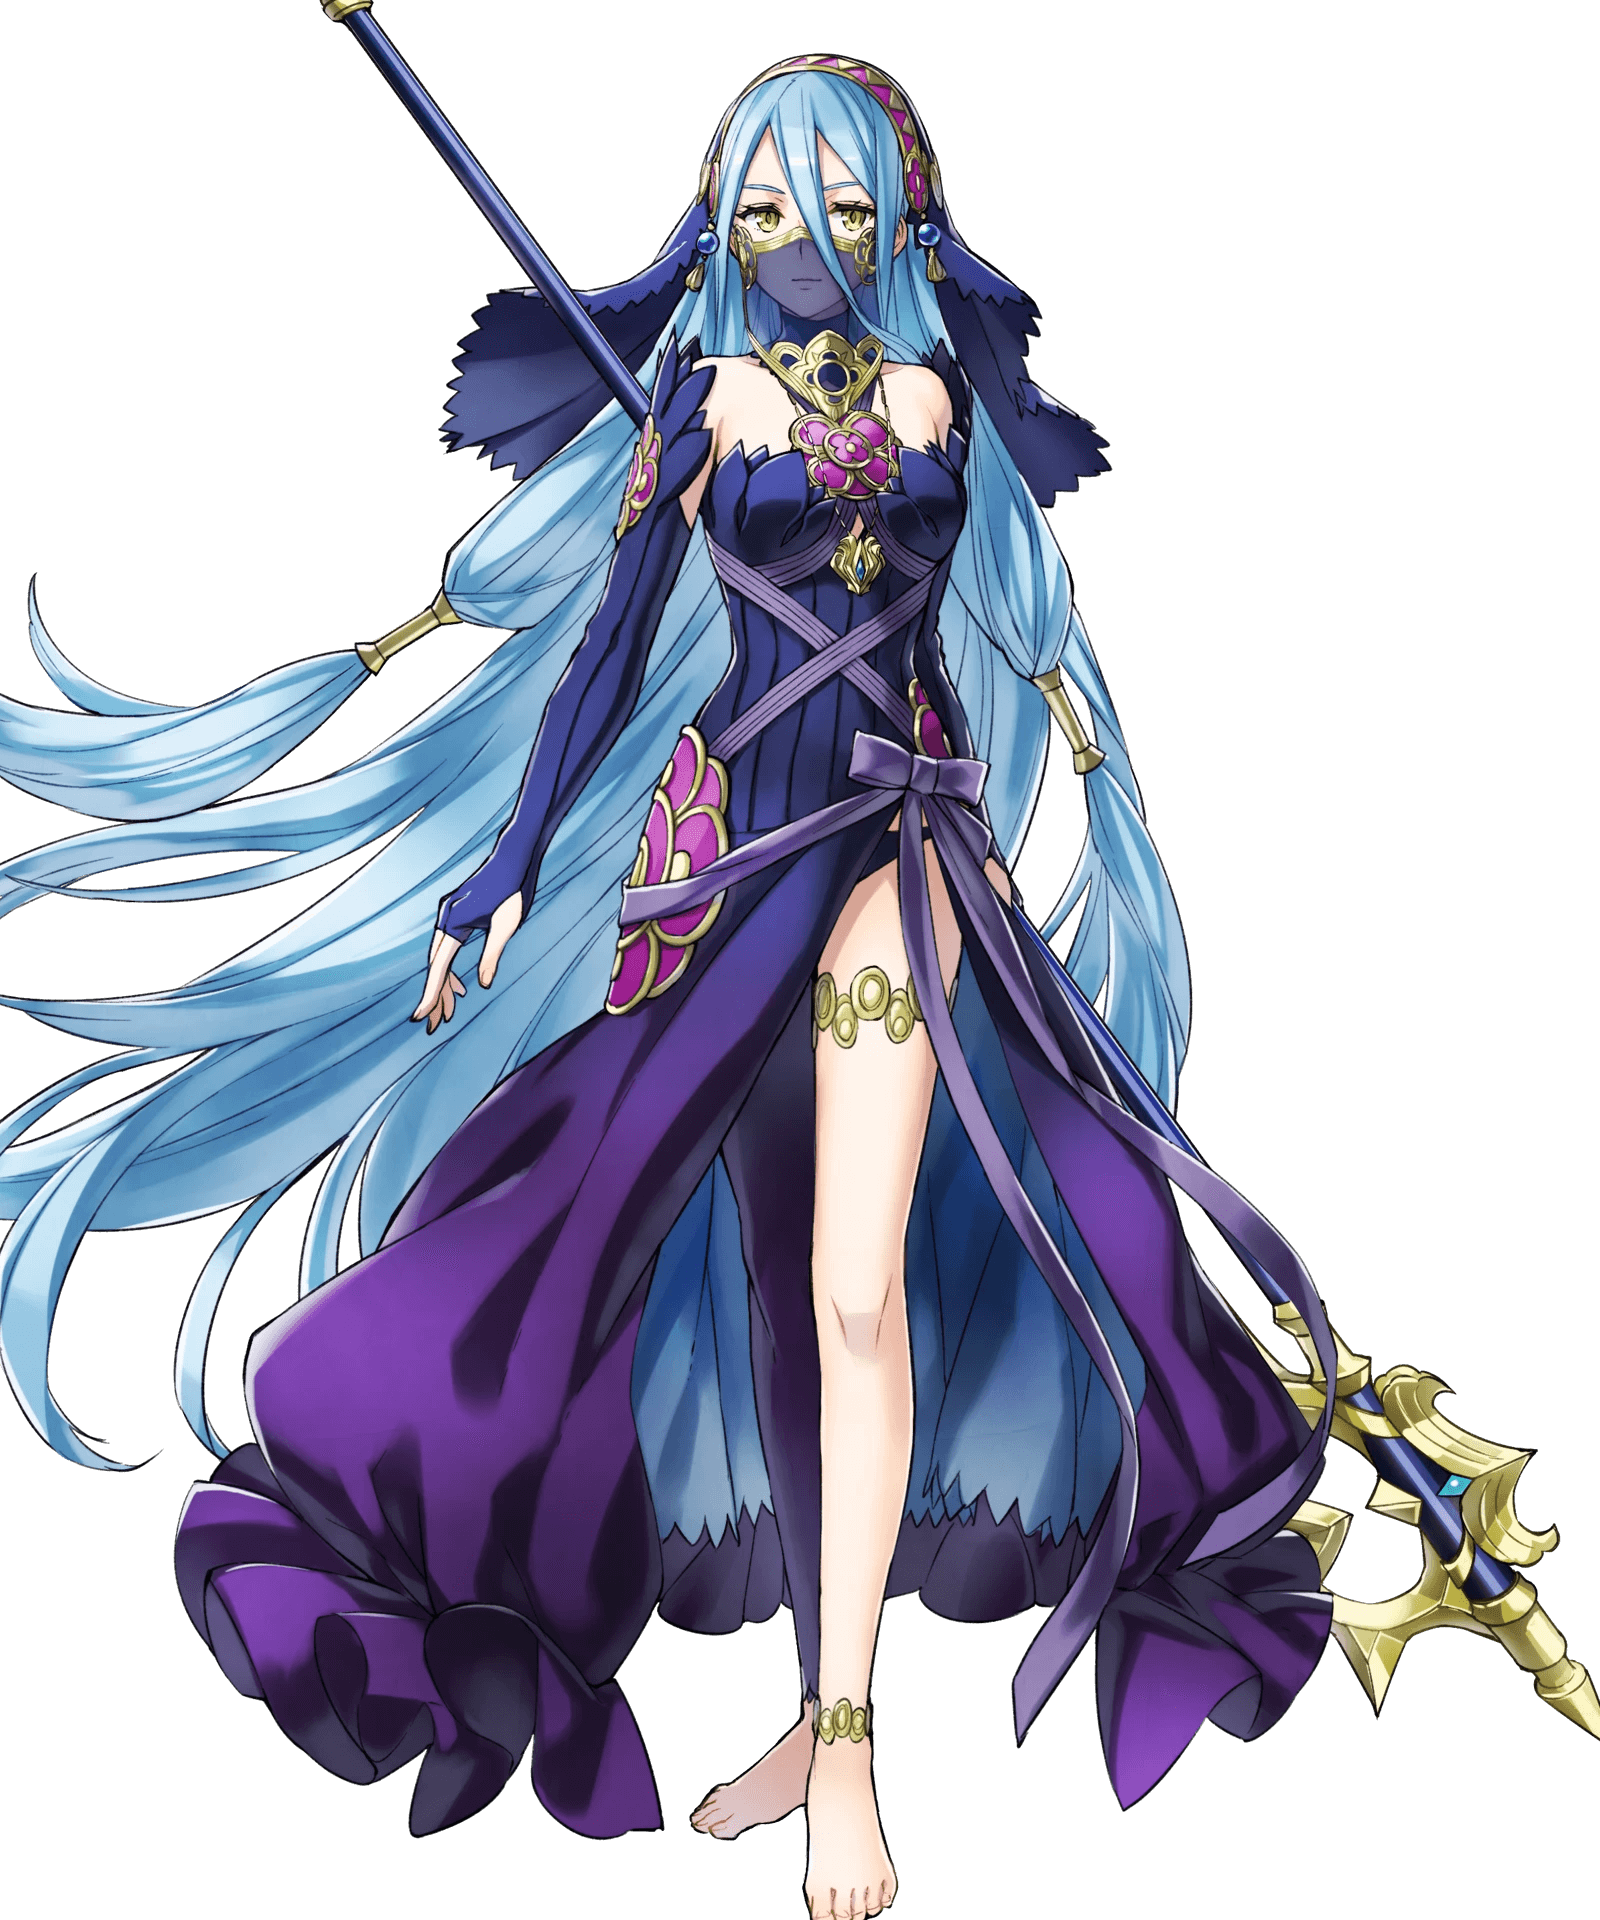 Bride Azura by artcelle | Fire Emblem Heroes | Know Your